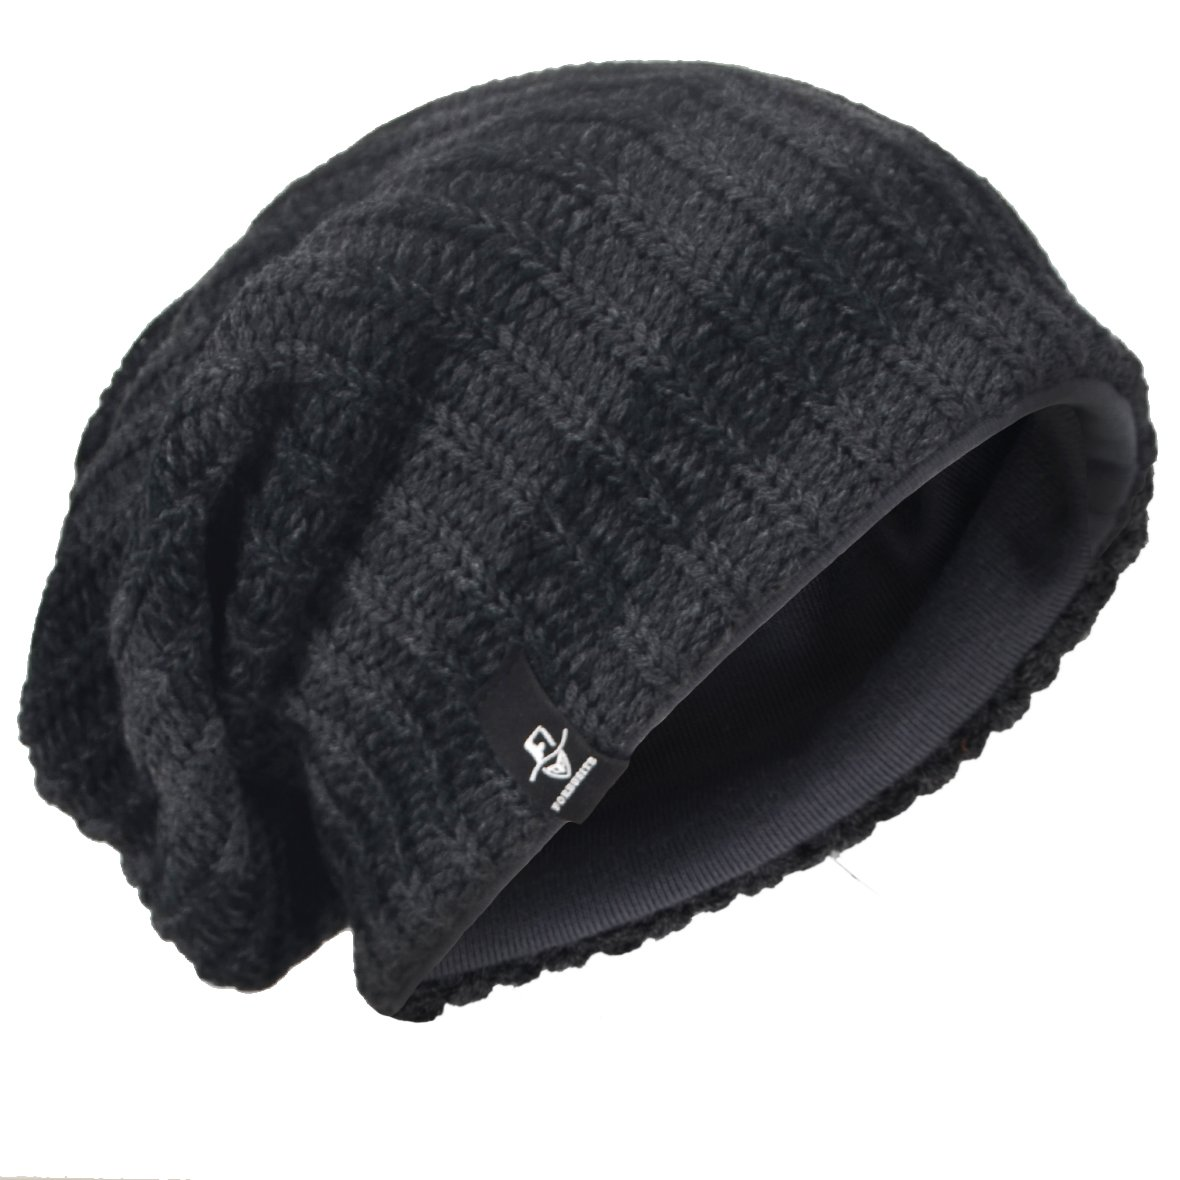 JESSE /· RENA Men Slouchy Beanie Knit Skull Cap Lined Baggy Winter Hat Oversized CFB08